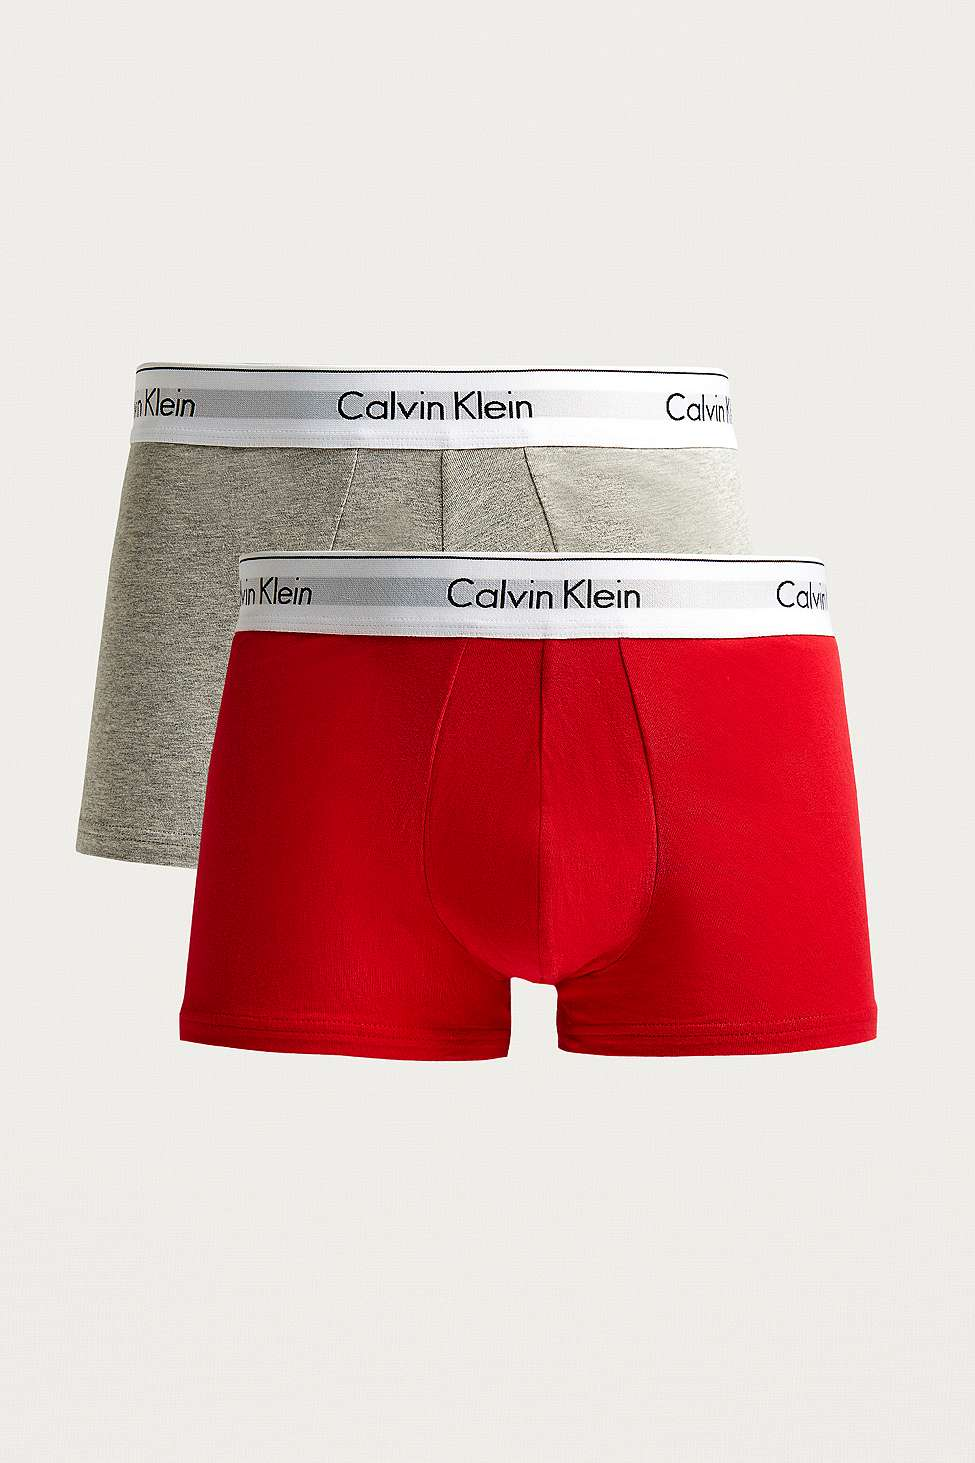 Calvin Klein Red And Grey Solid Boxer Trunks Pack Urban Outfitters